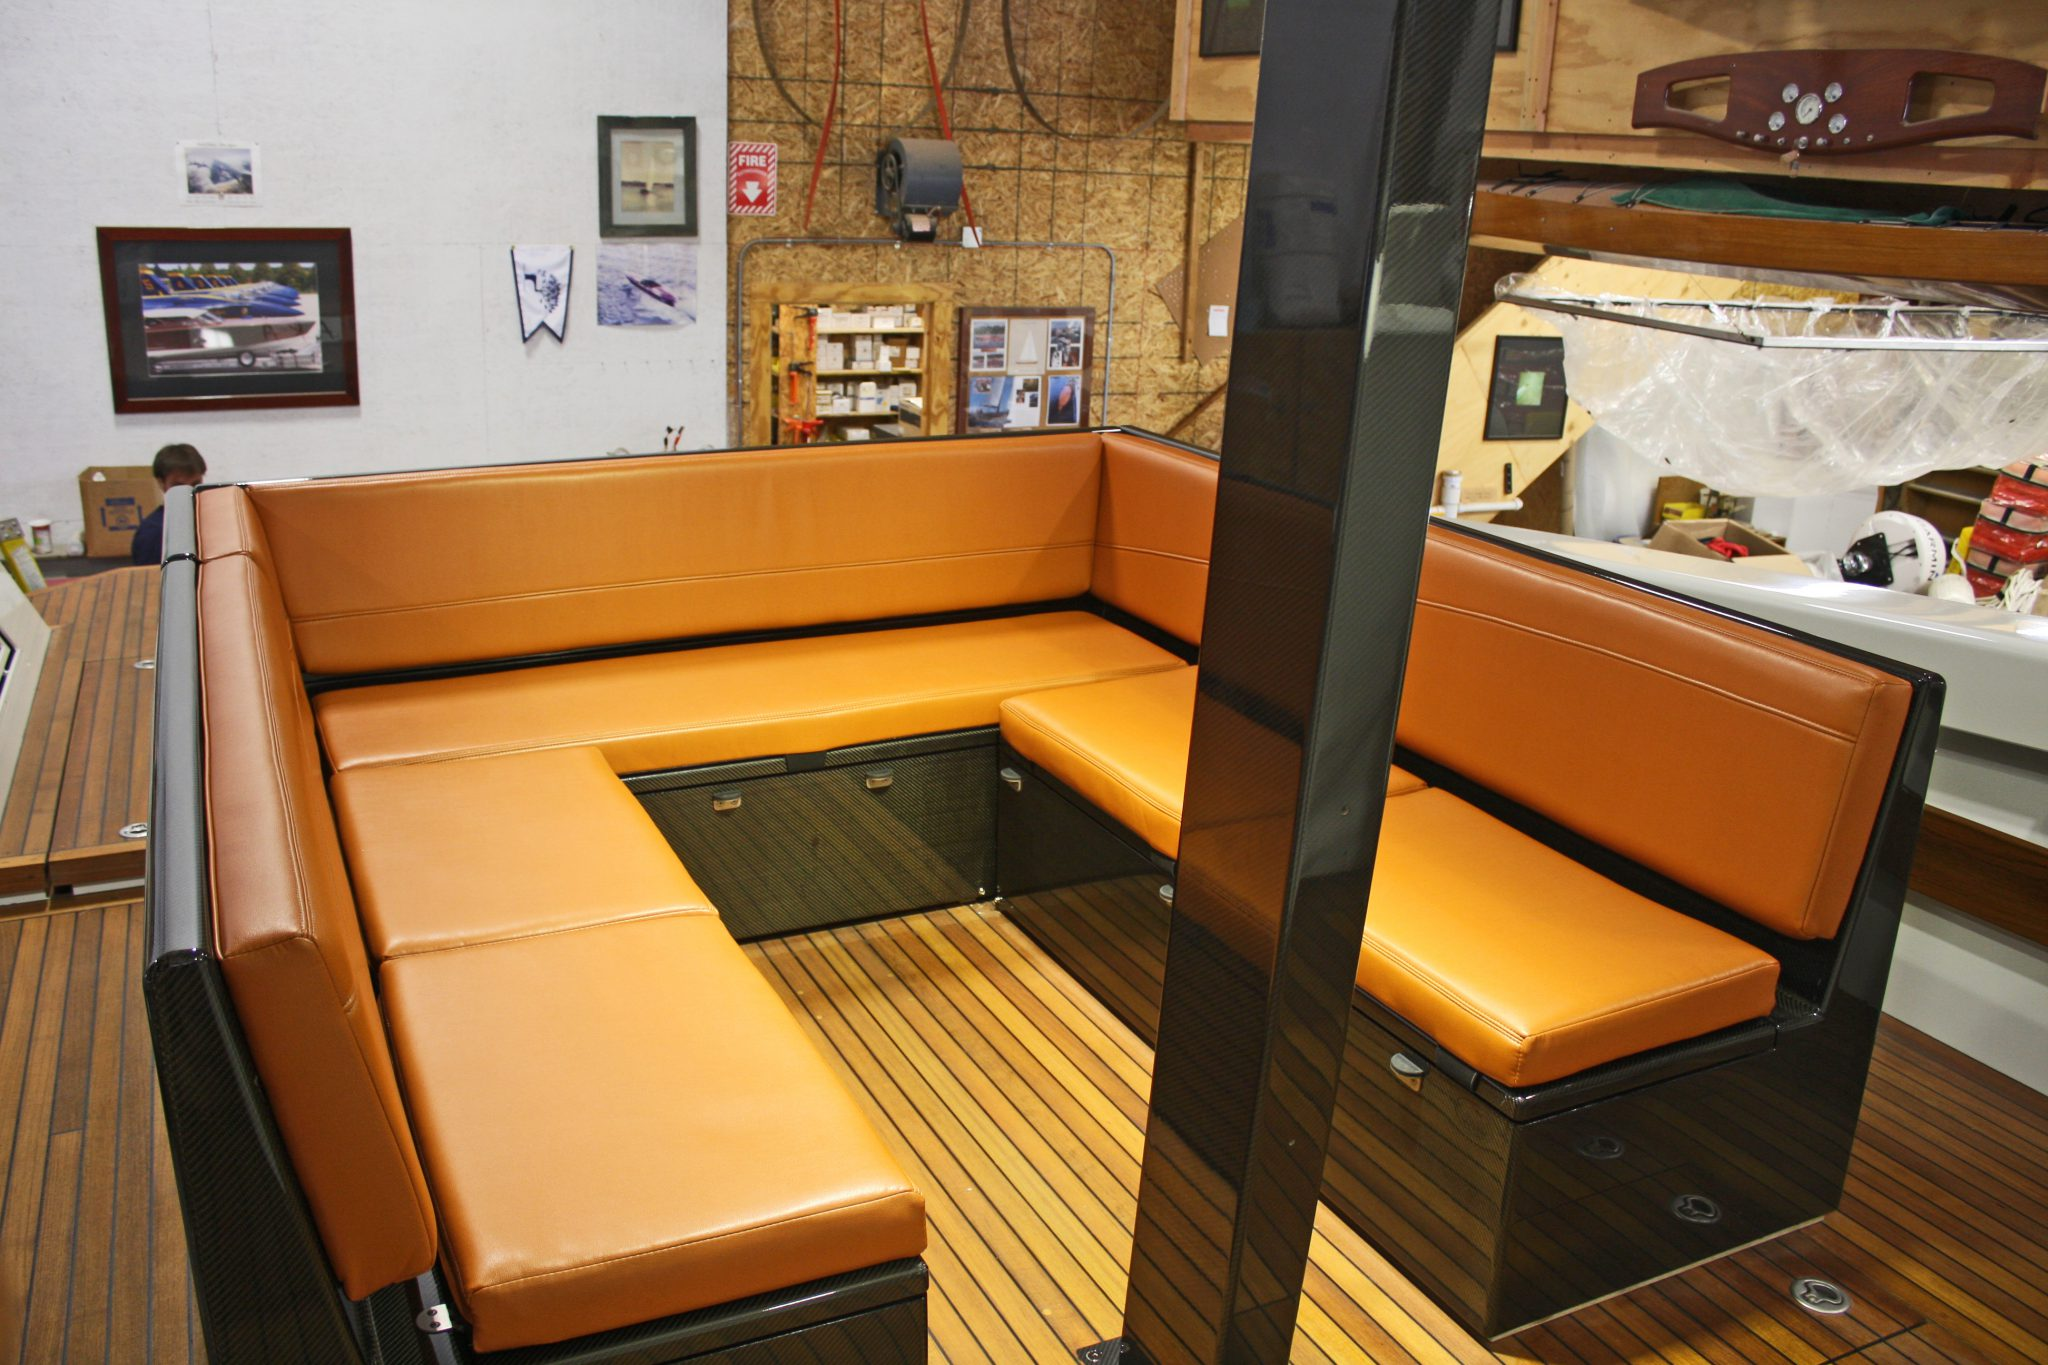 Unique orange leather seating in Chiara